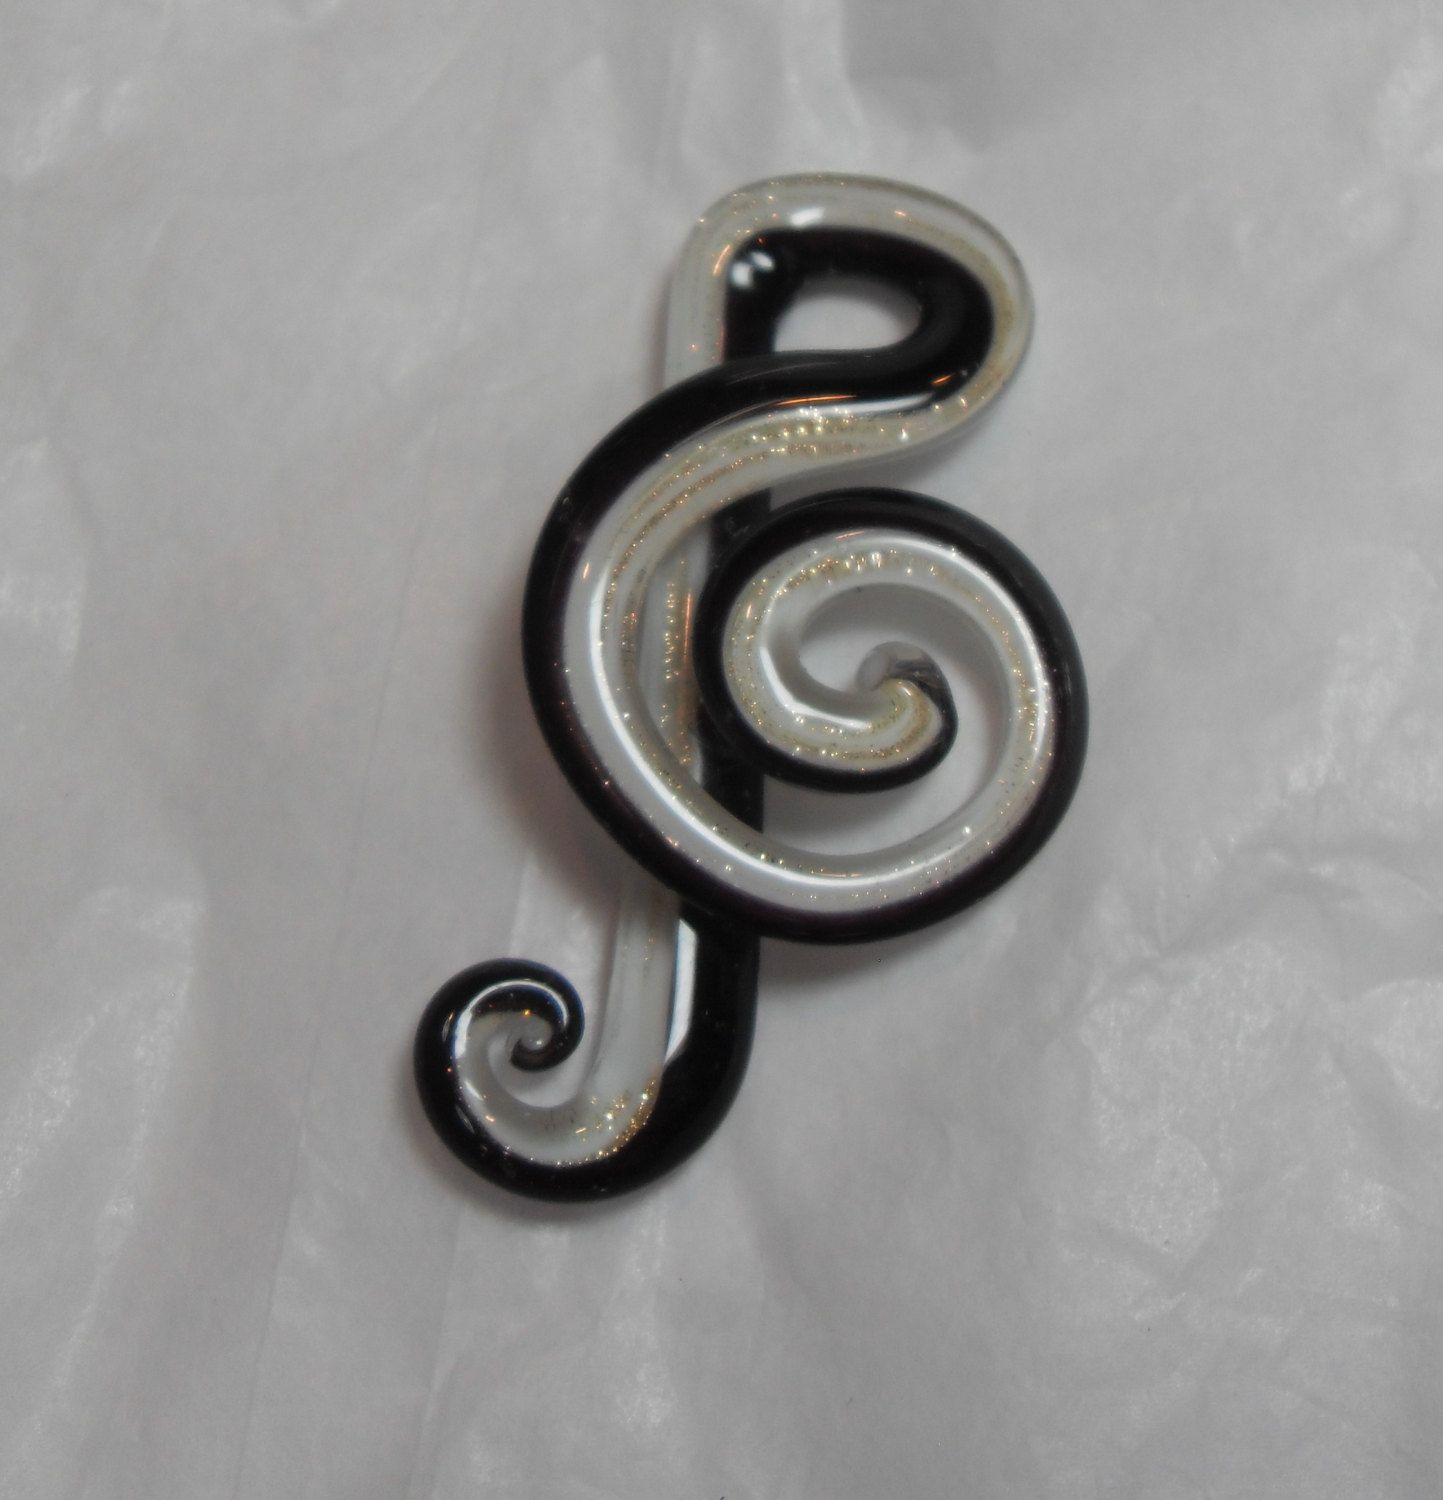 Musical note pendant black and white art glass pendant jewelry musical note pendant black and white art glass pendant jewelry supplies necklace pendant aloadofball